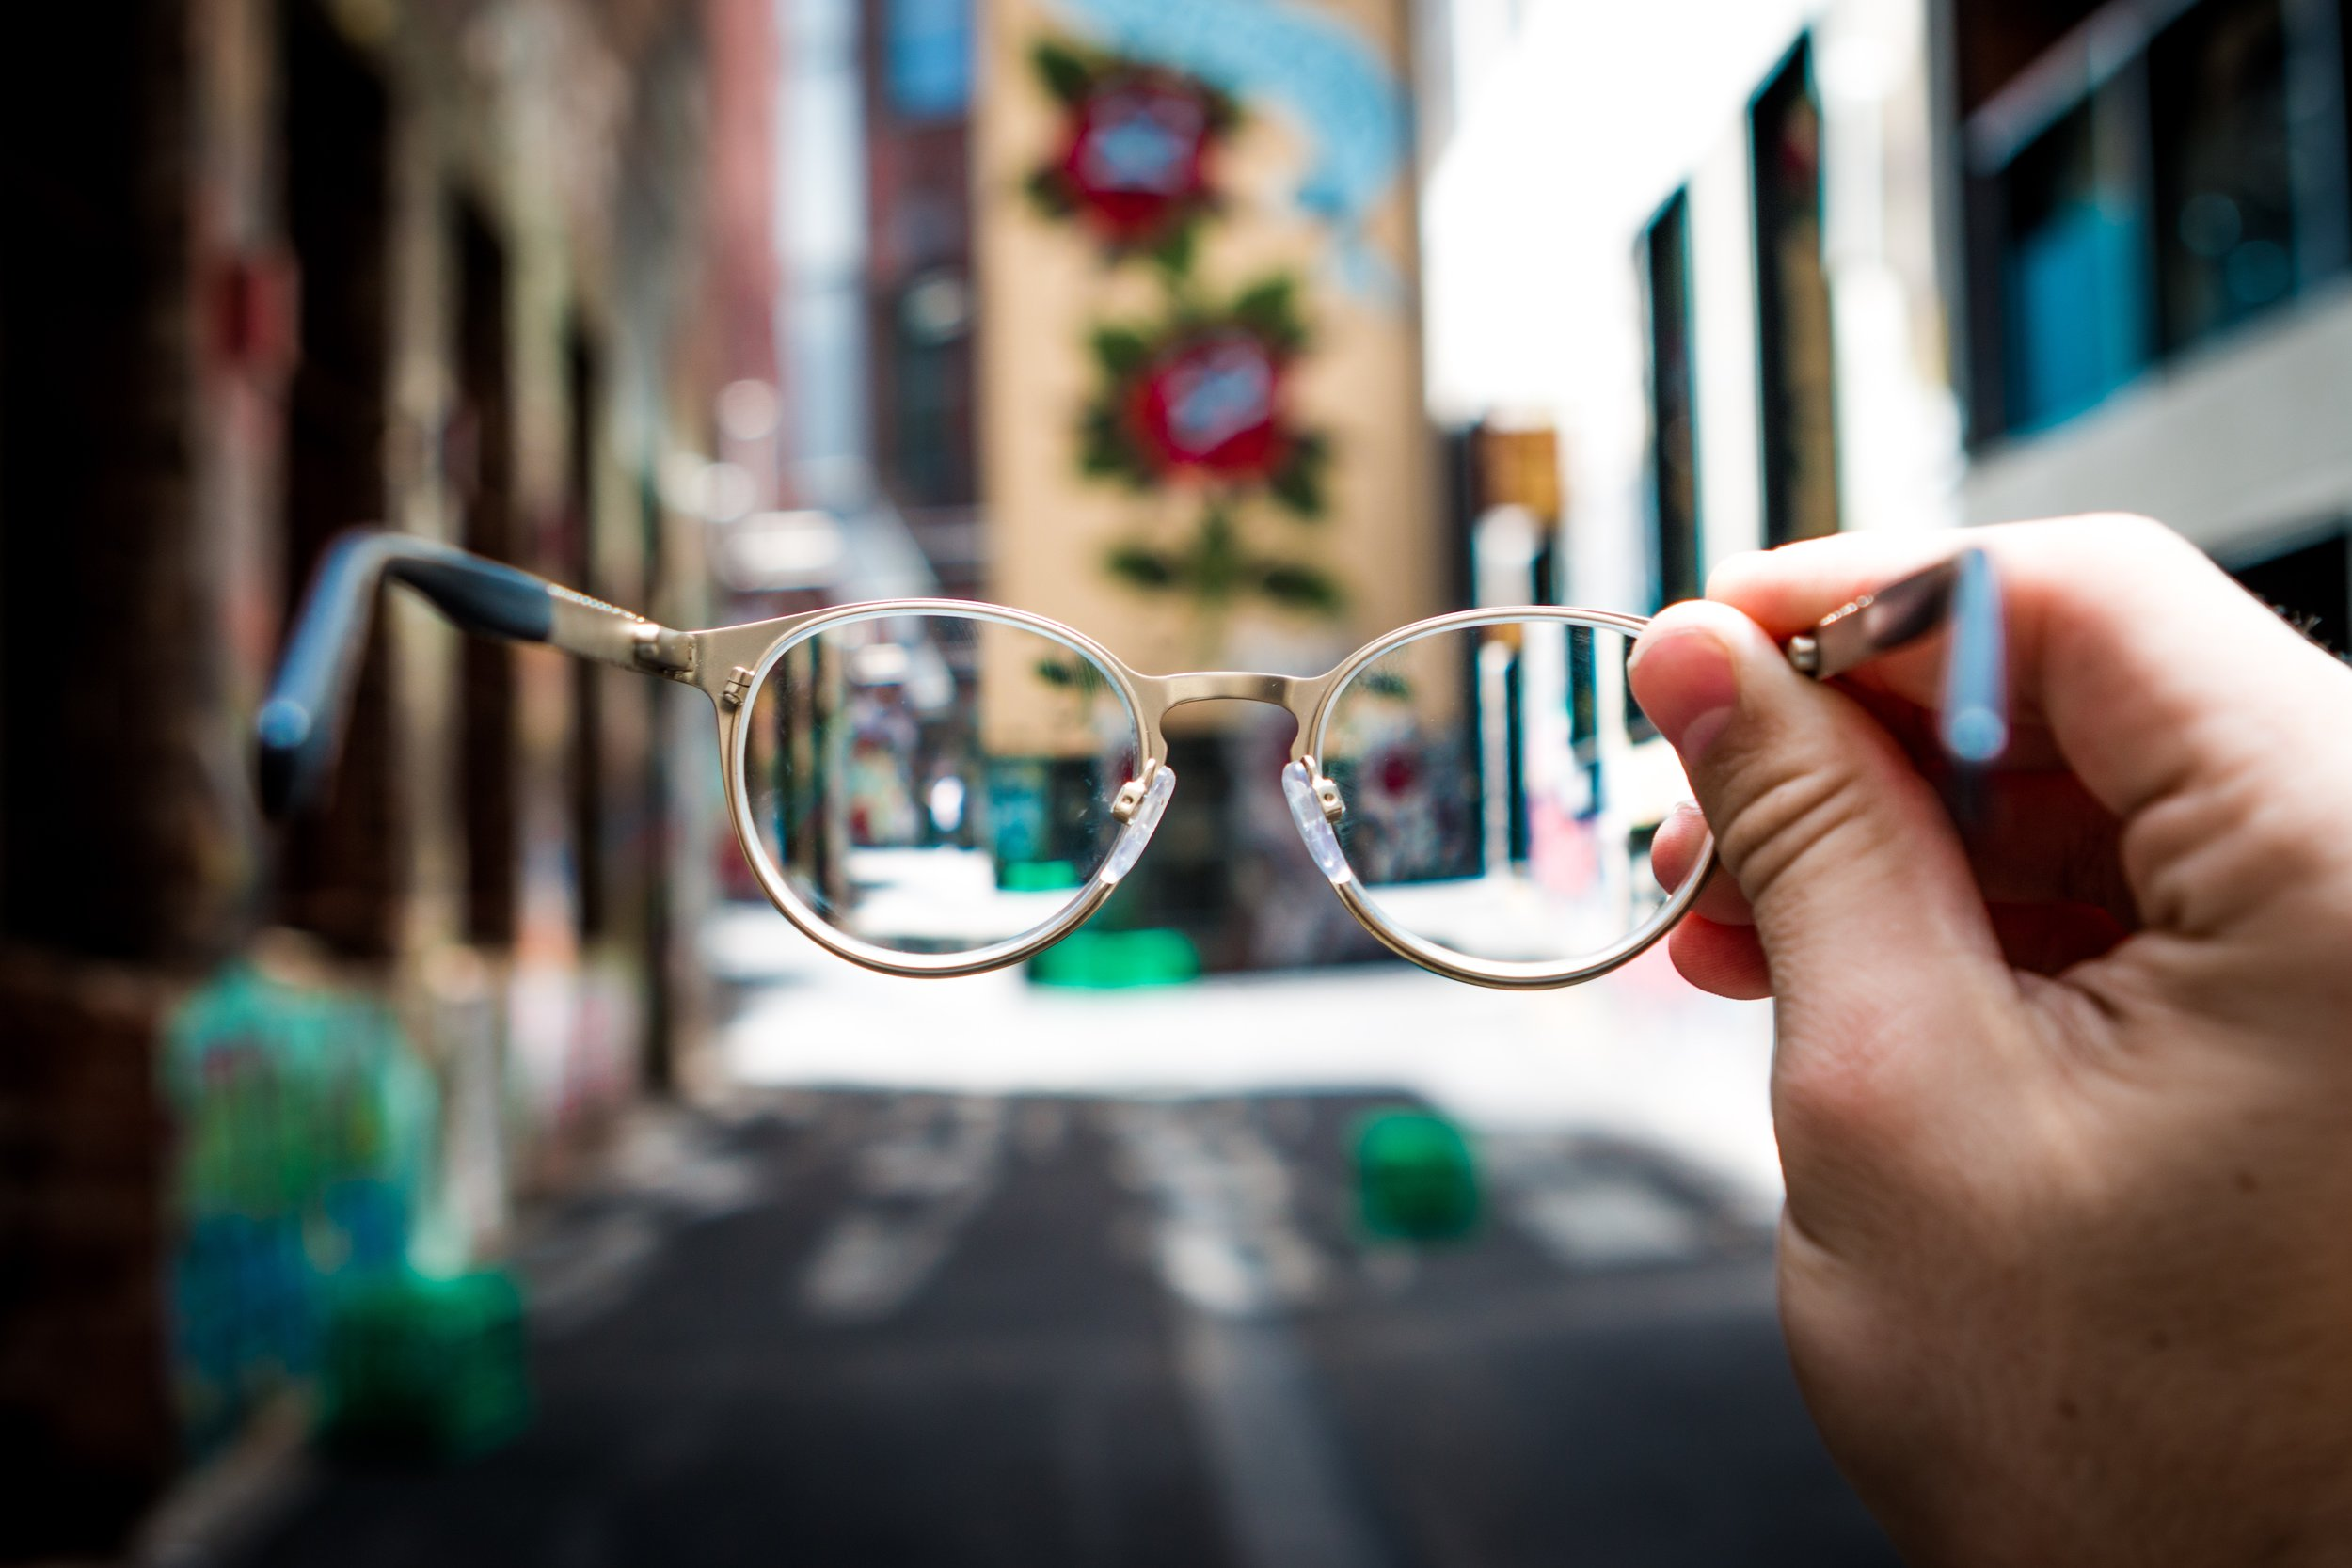 Hands holding a pair of glasses